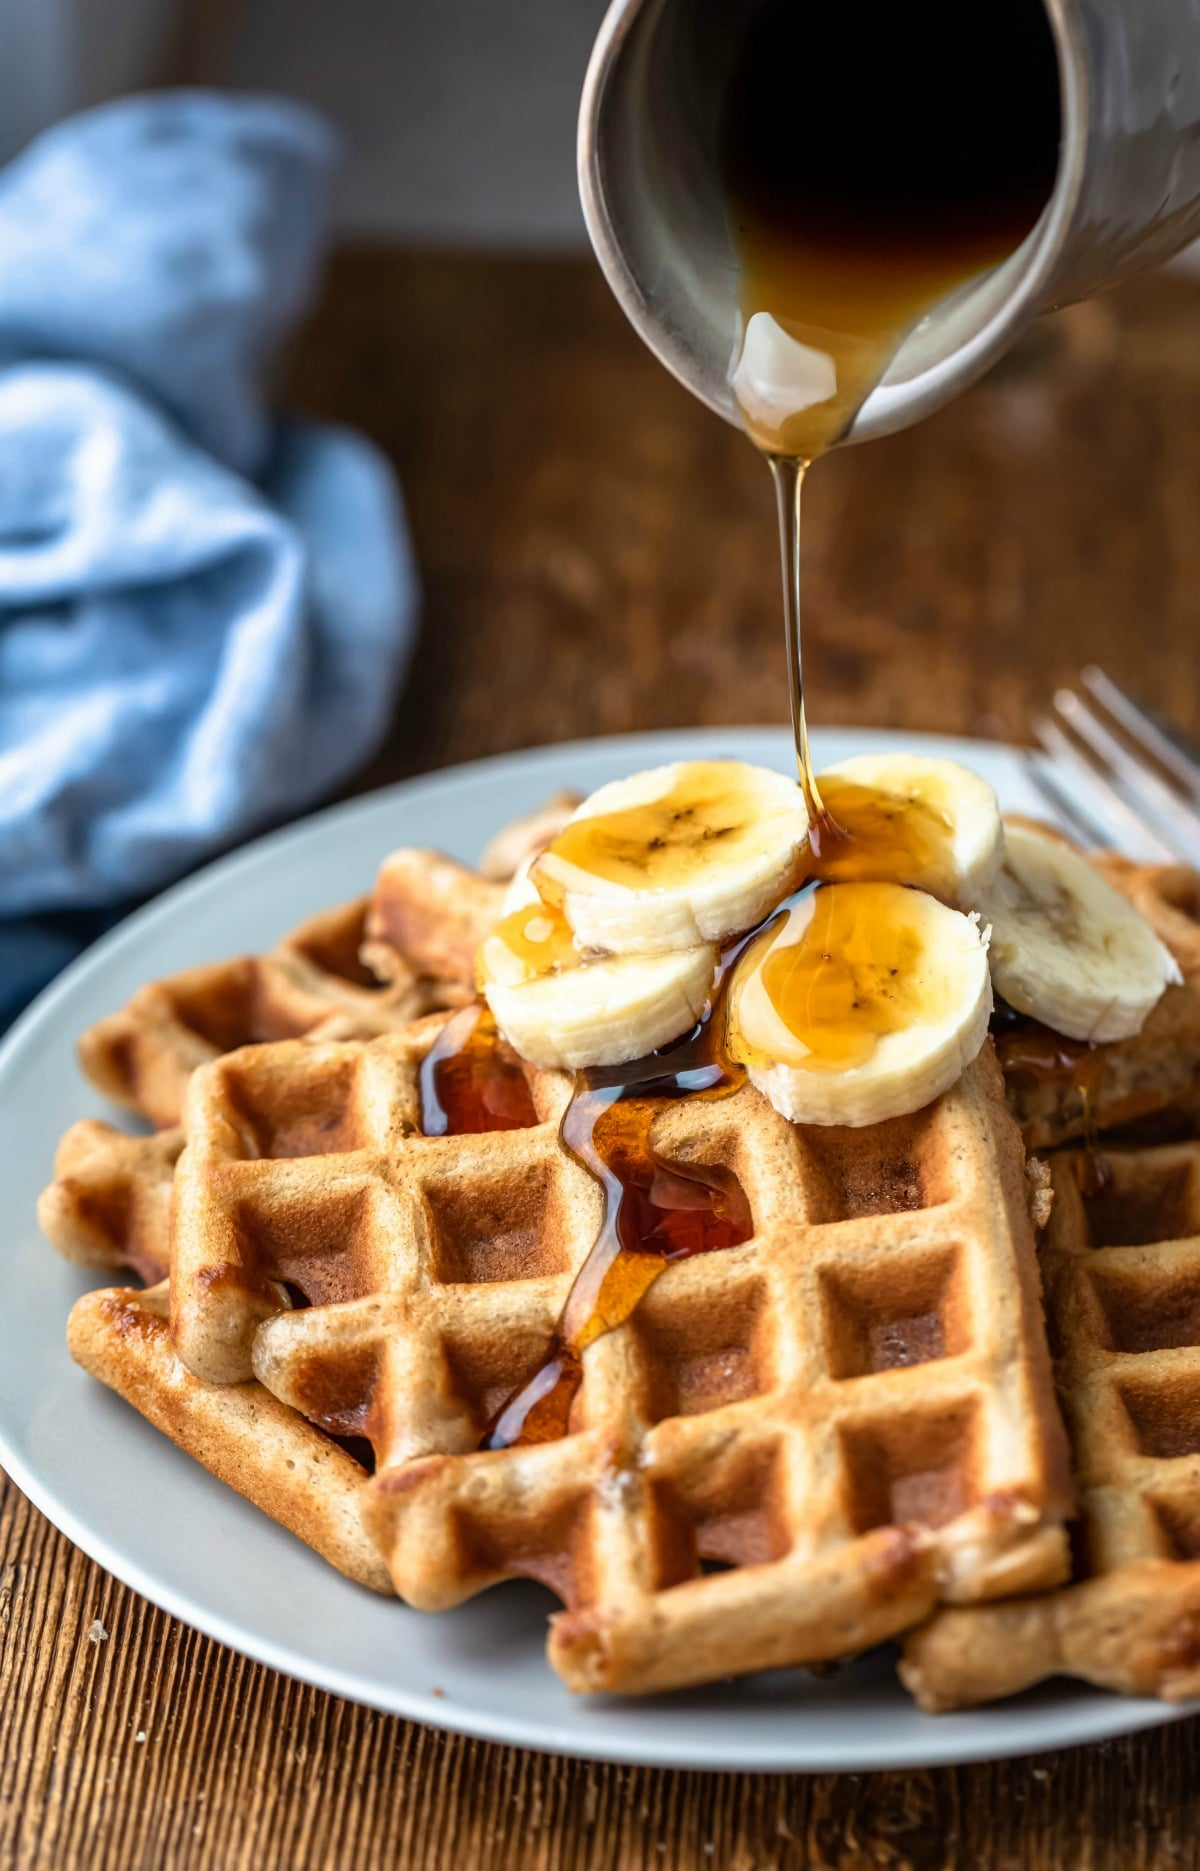 Banana bread waffles with maple syrup on top